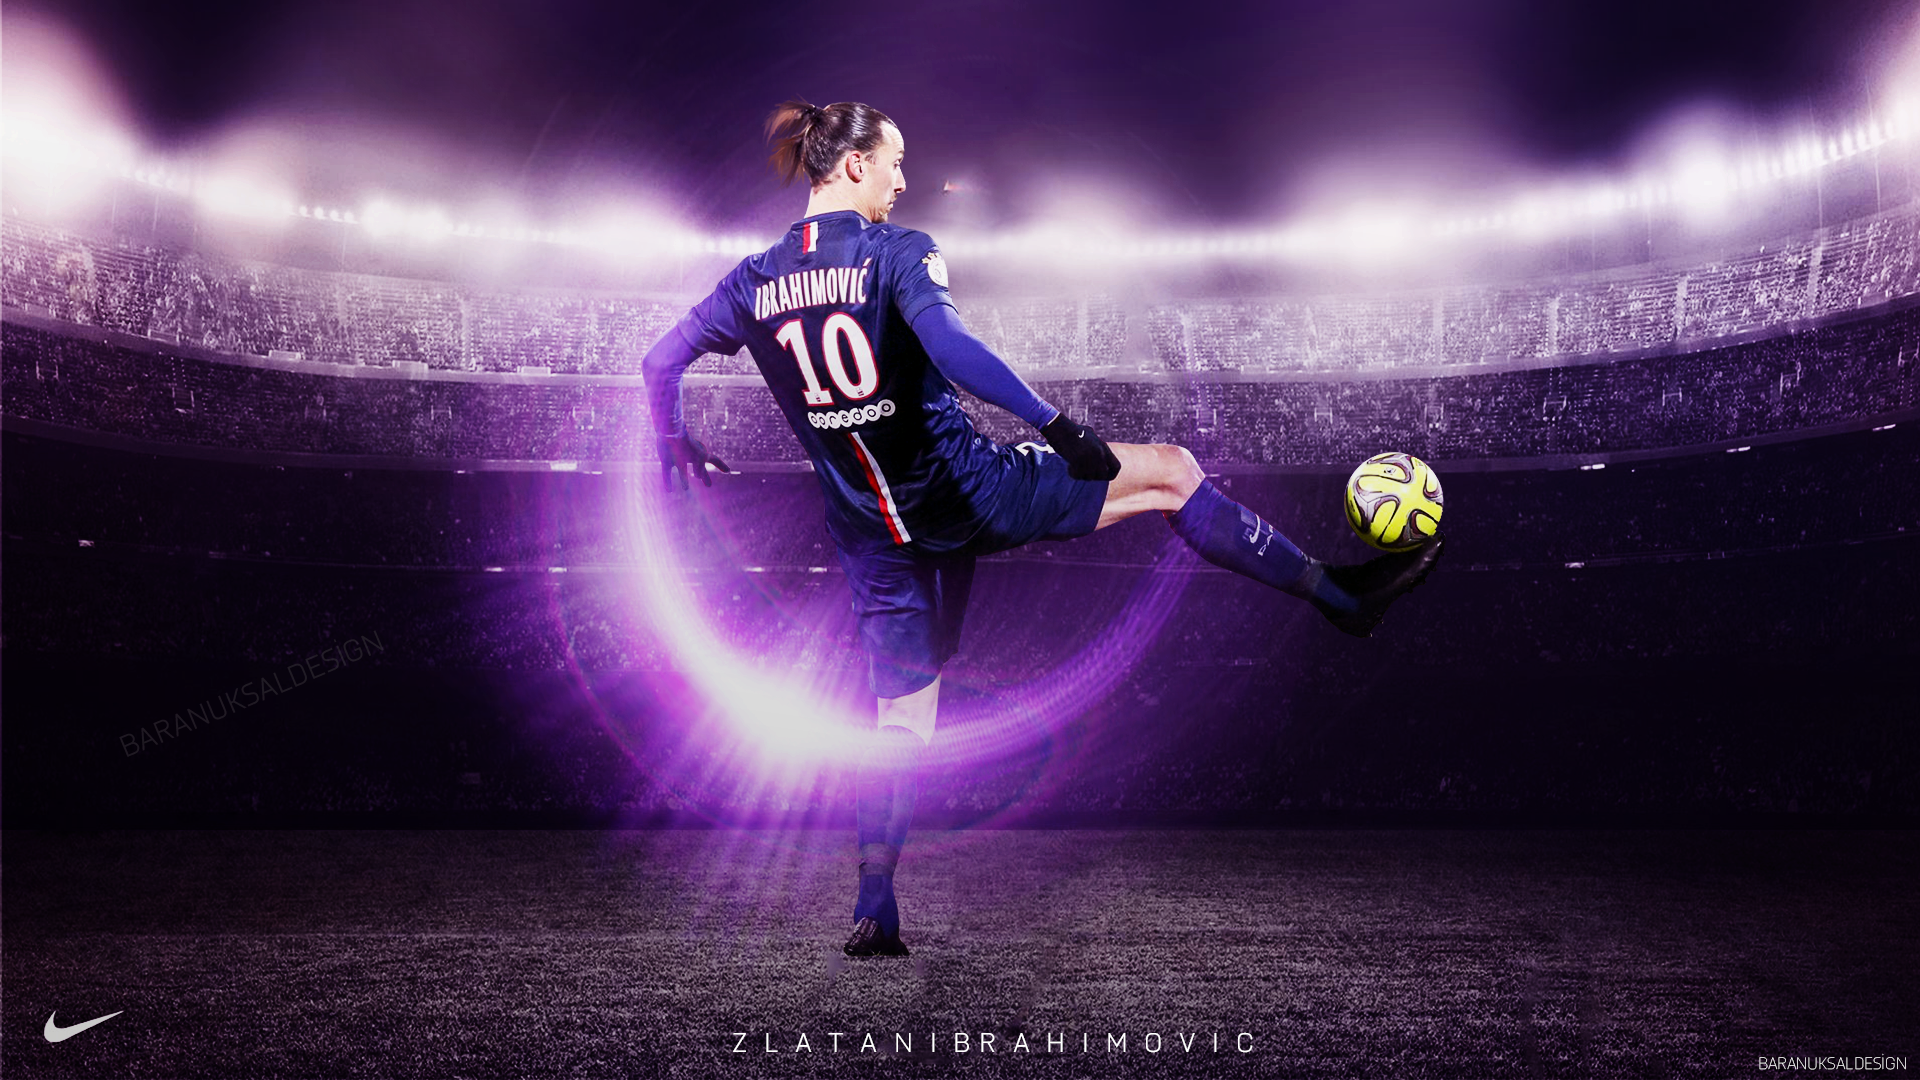 Zlatan ibrahimovic wallpapers pictures images for Wallpaper home full hd